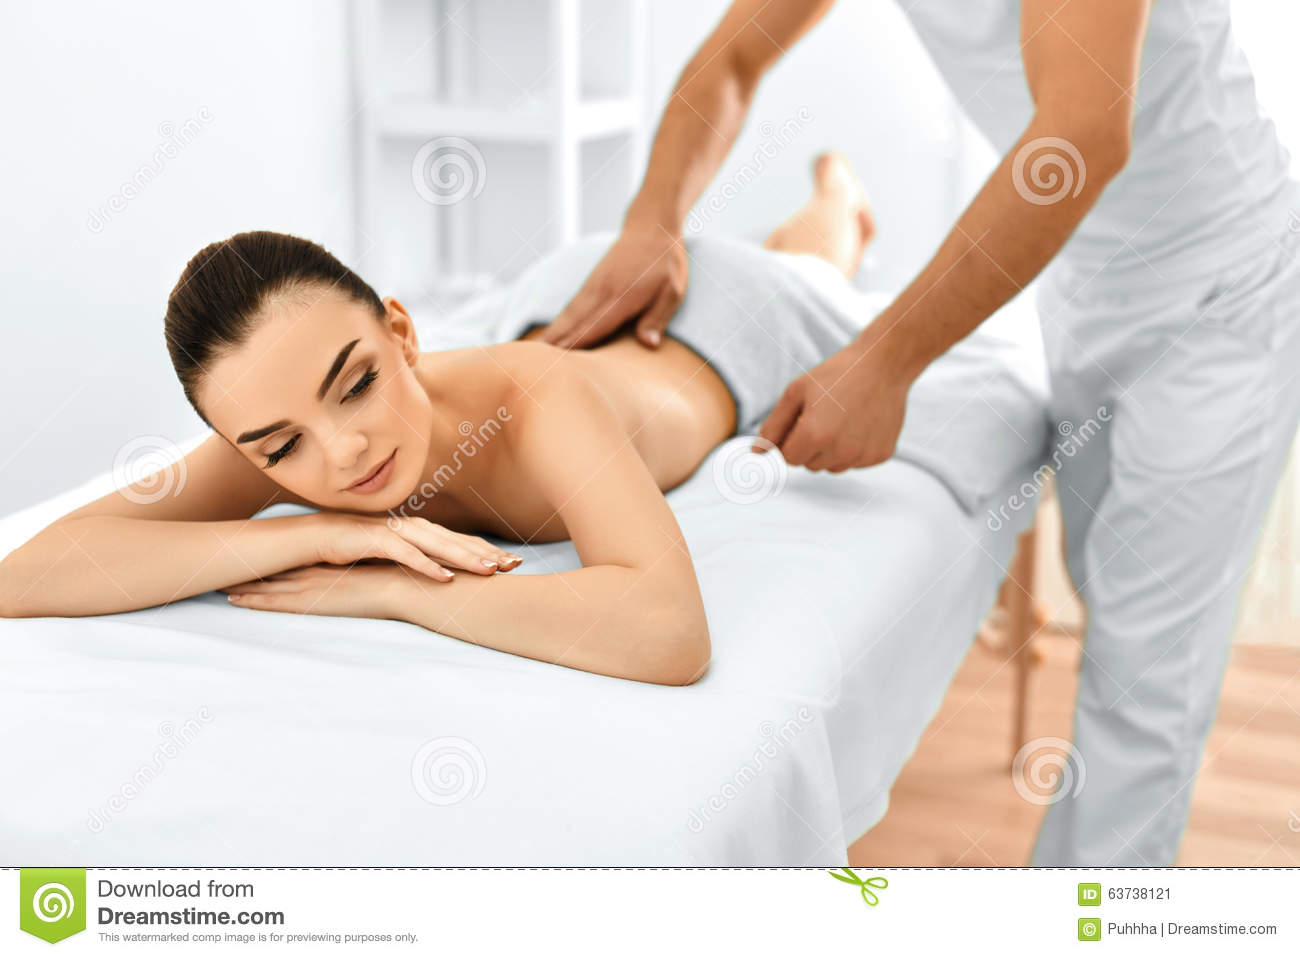 Girl girl body body massage